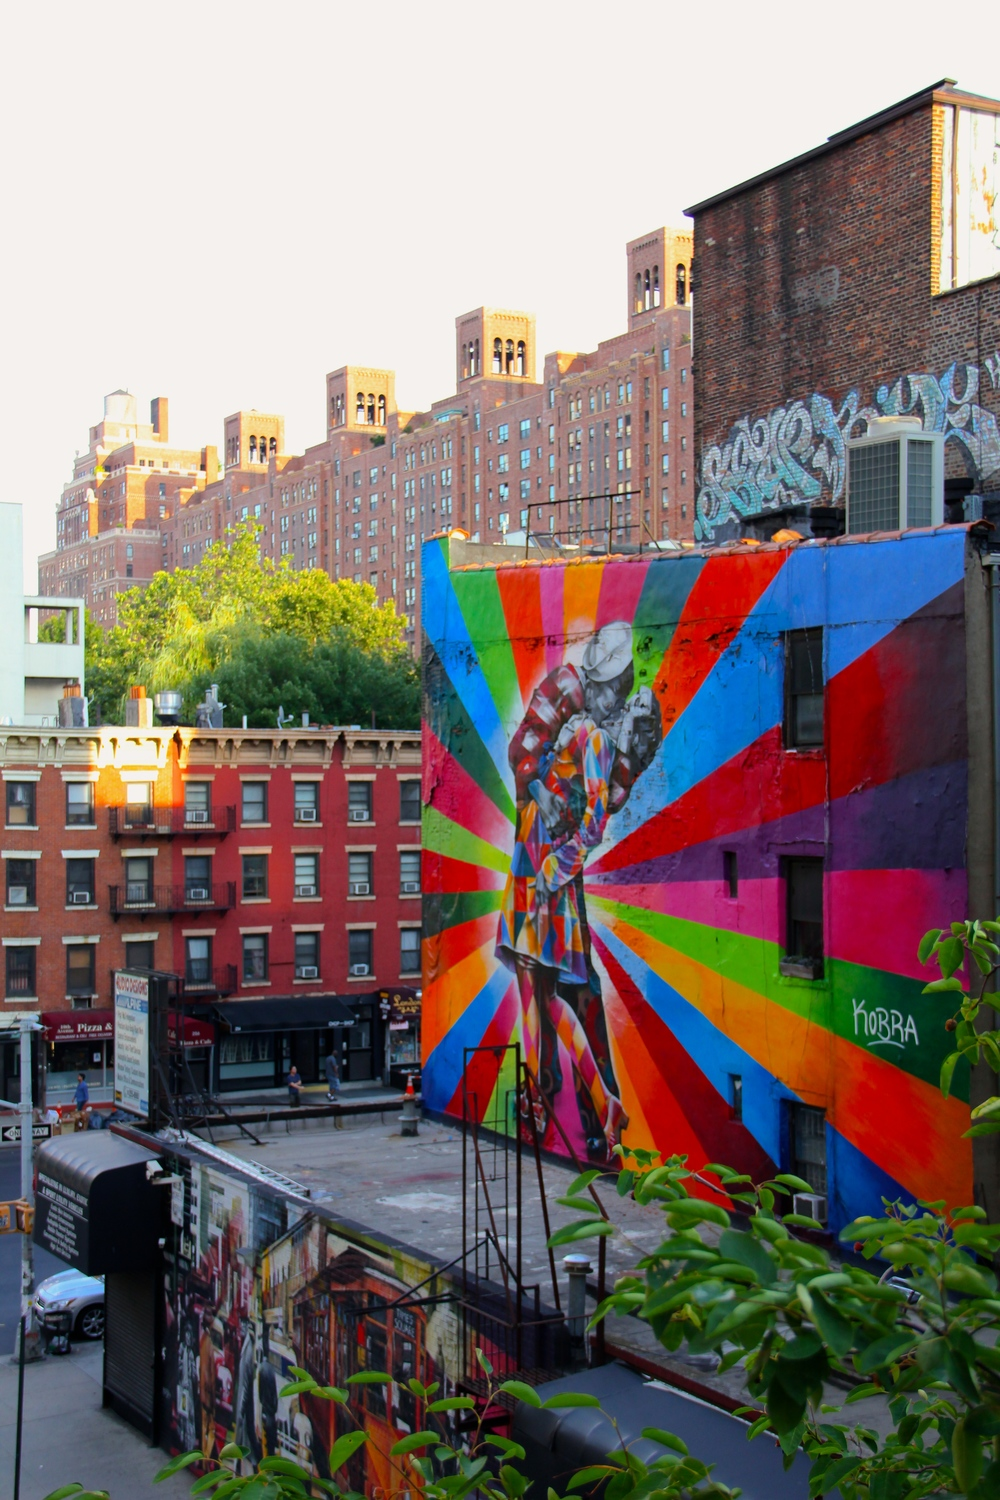 The High Line - Meatpacking District, Manhattan - West 23rd St and 10th Avenue